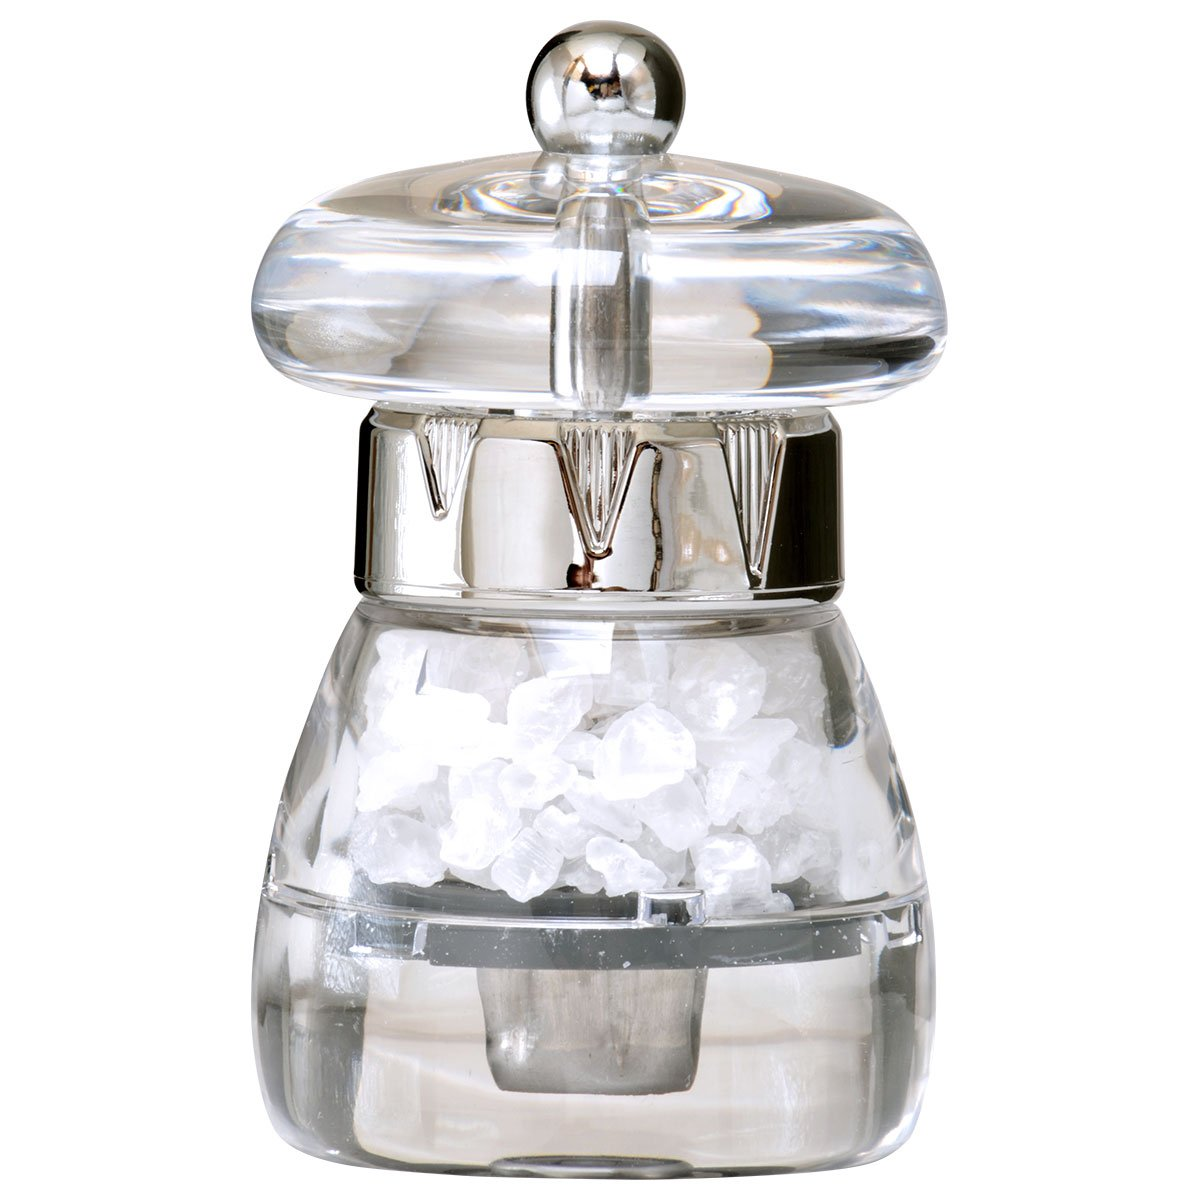 William Bounds 04129 Mini Mushroom Mill - Pepper Grinder - Acrylic and Chrome Finish